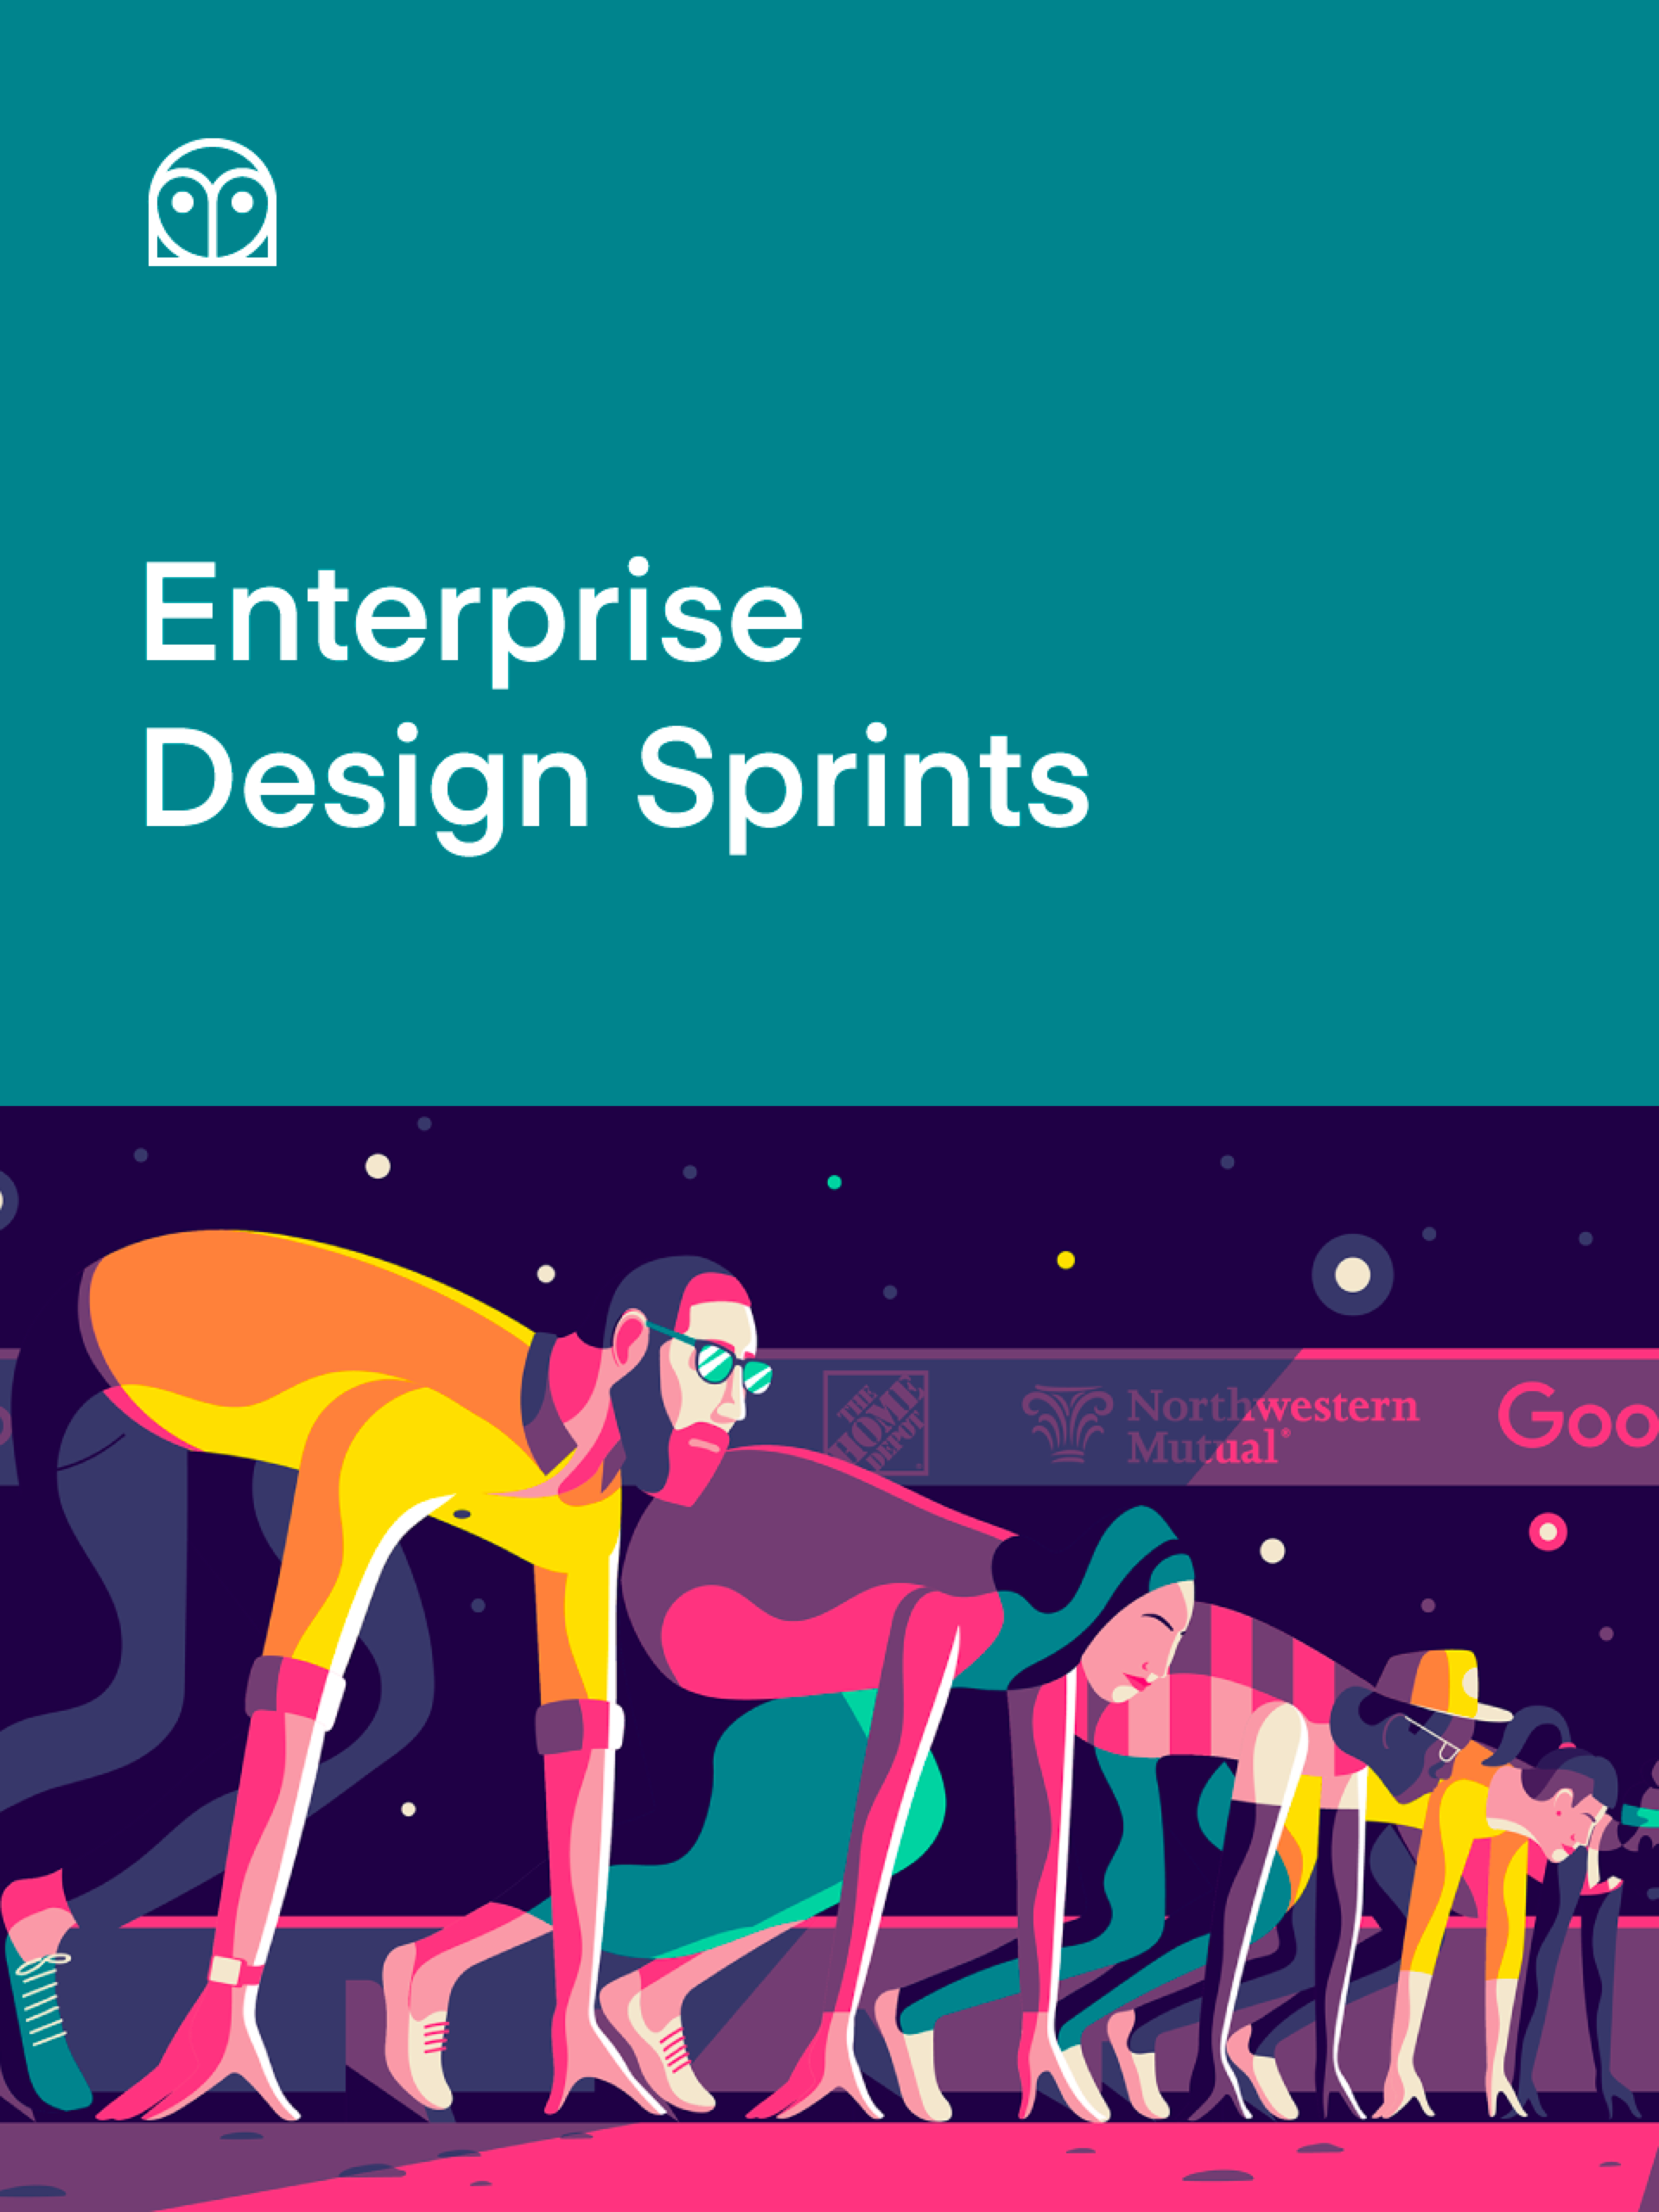 Enterprise Design Sprints